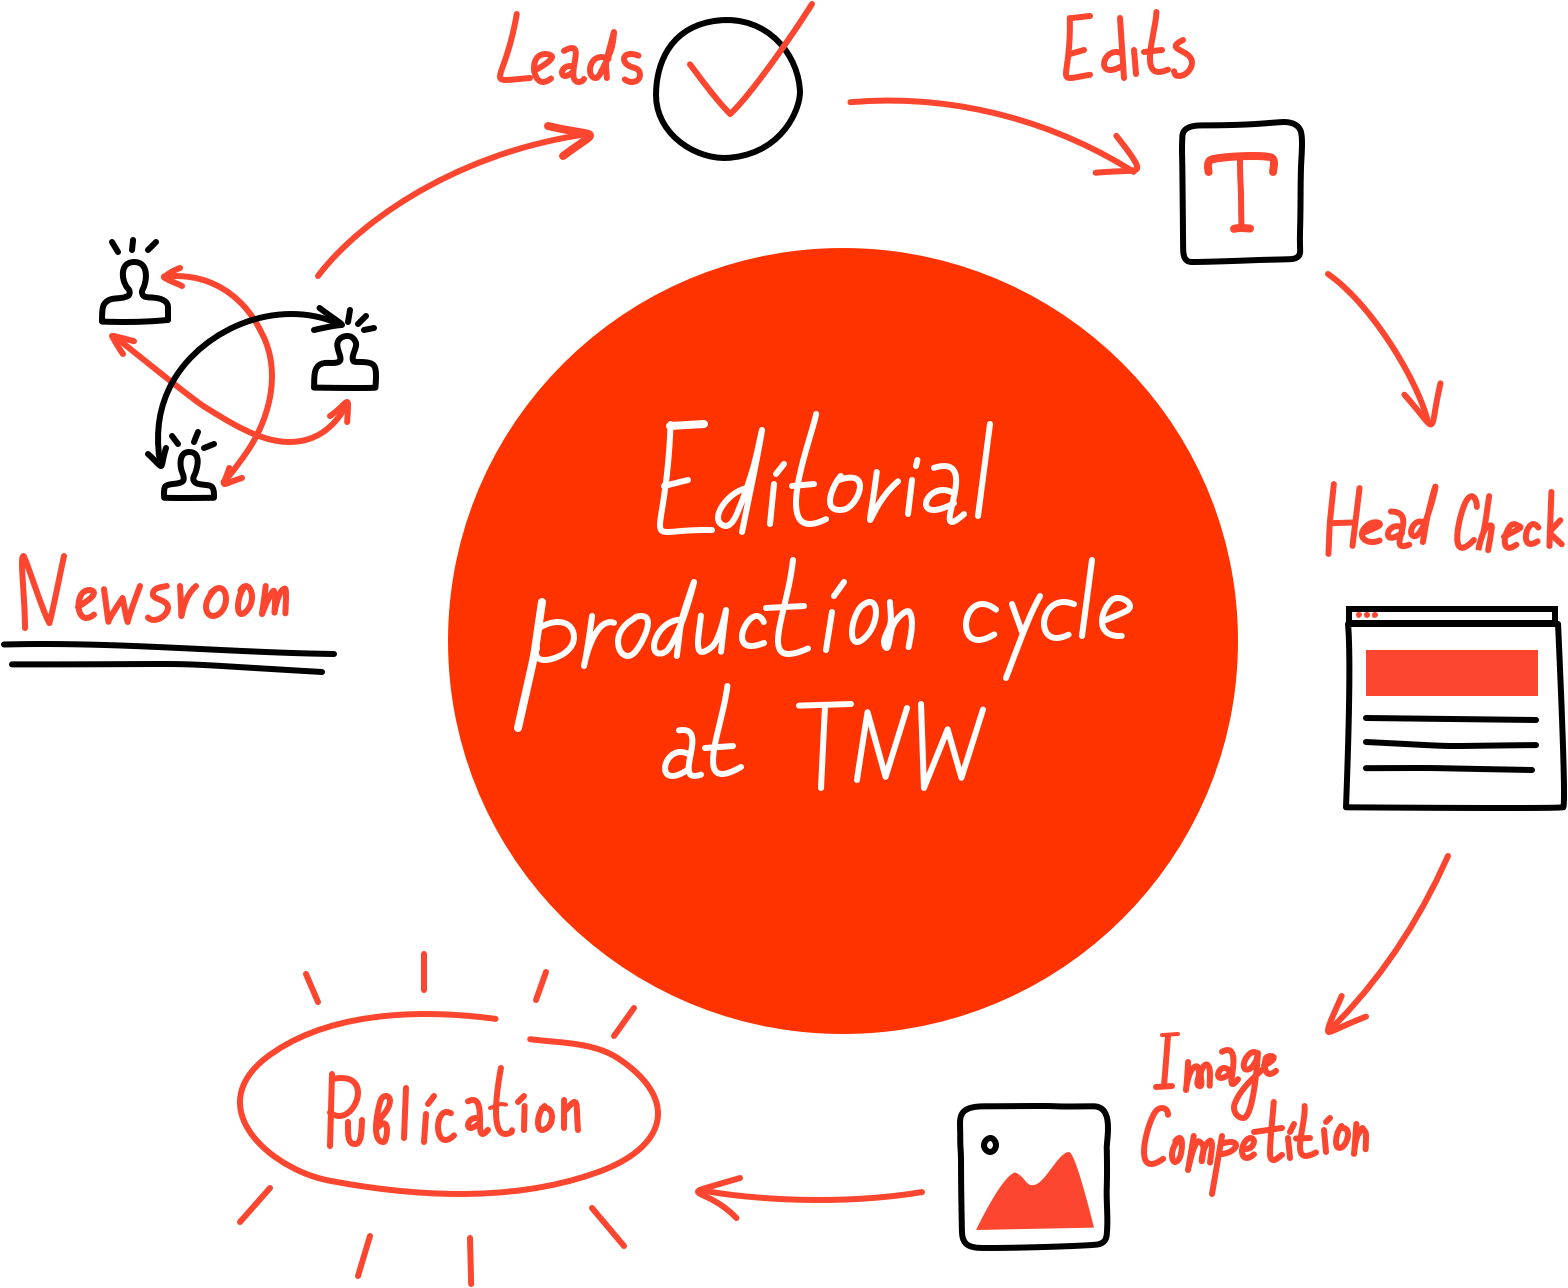 Editorial workflow at TNW